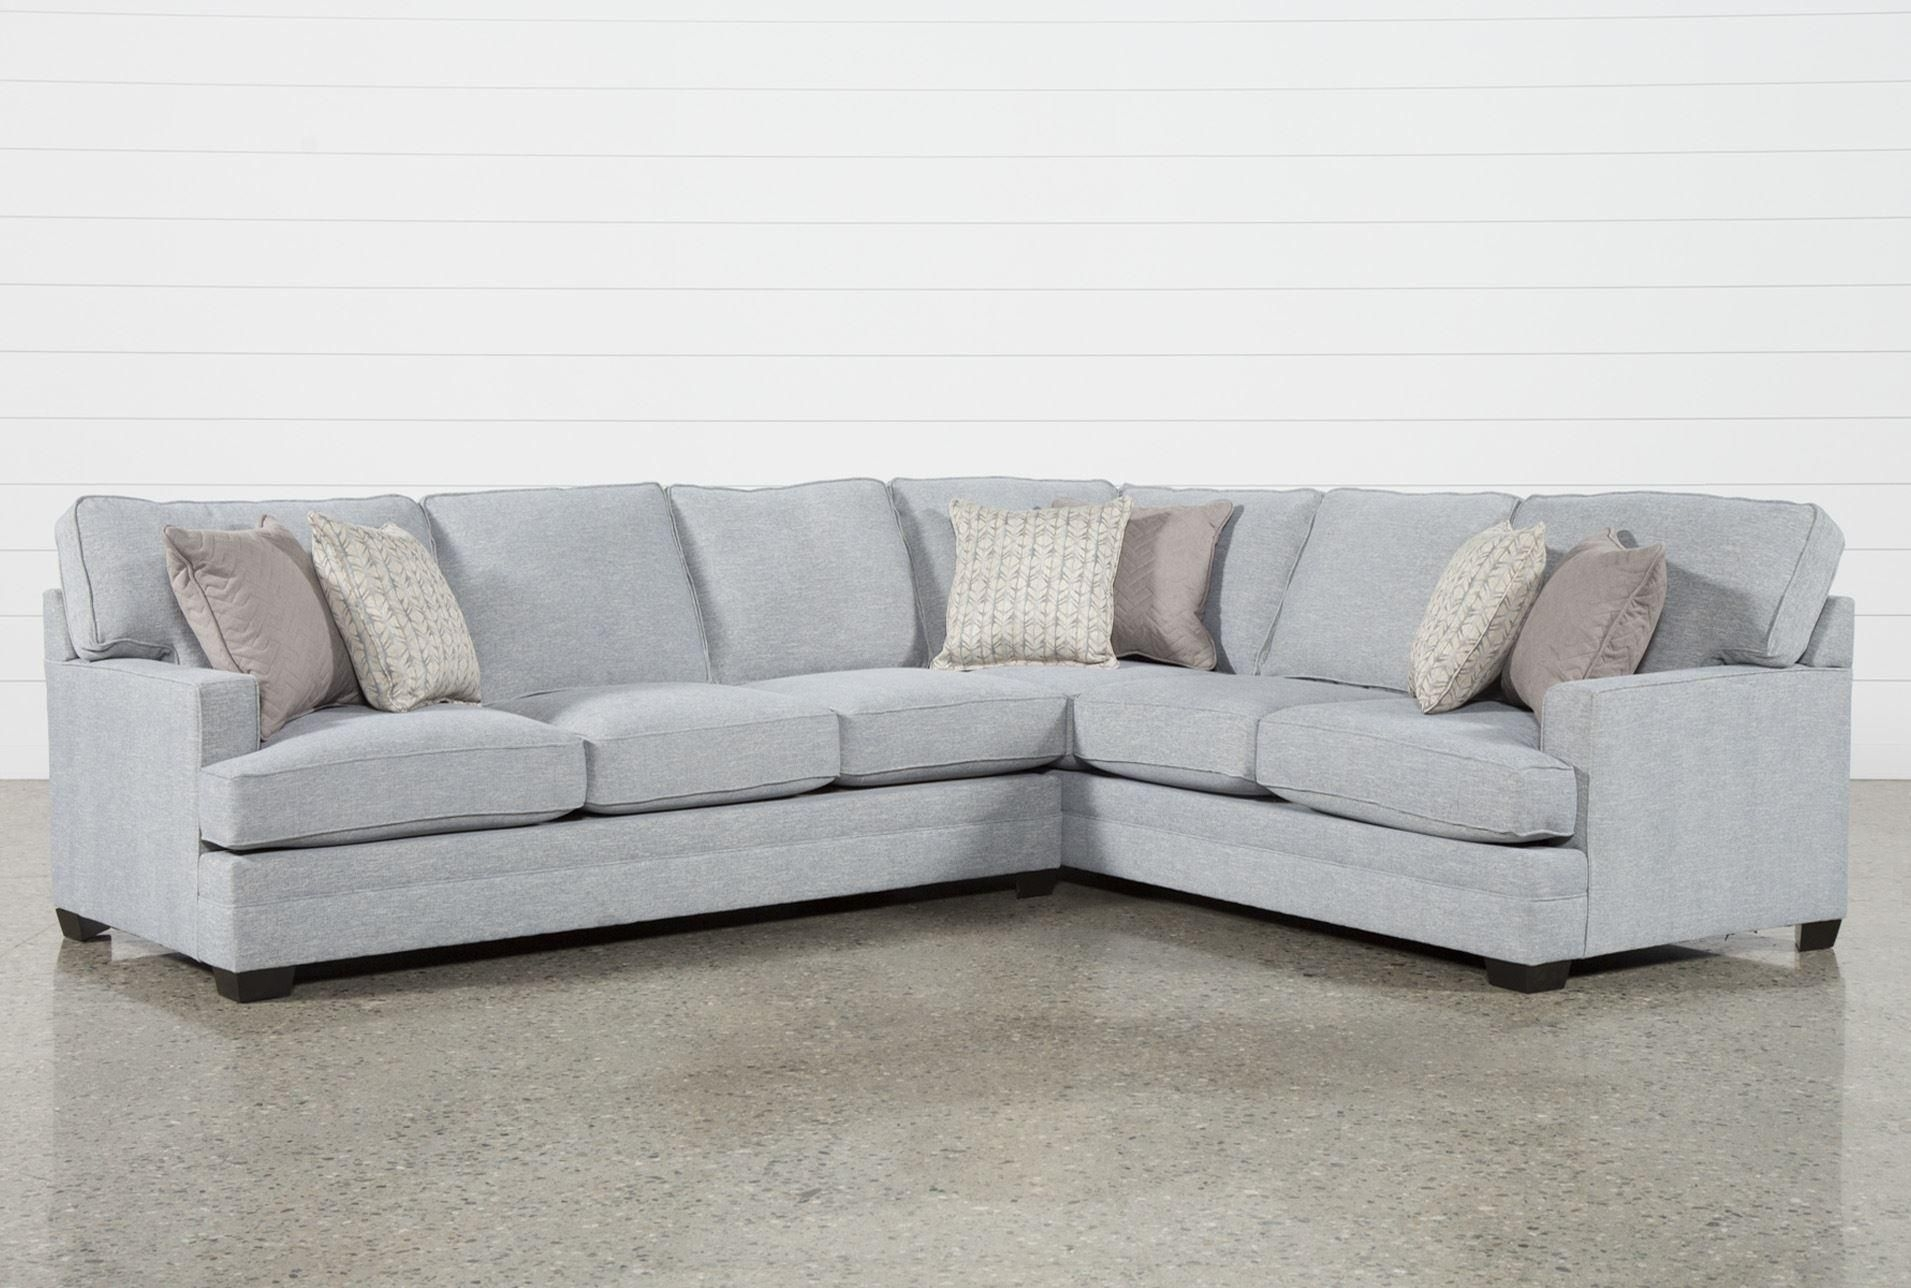 Josephine 2 Piece Sectional W/laf Sofa | For The Home | Pinterest Pertaining To Aquarius Dark Grey 2 Piece Sectionals With Laf Chaise (View 8 of 25)